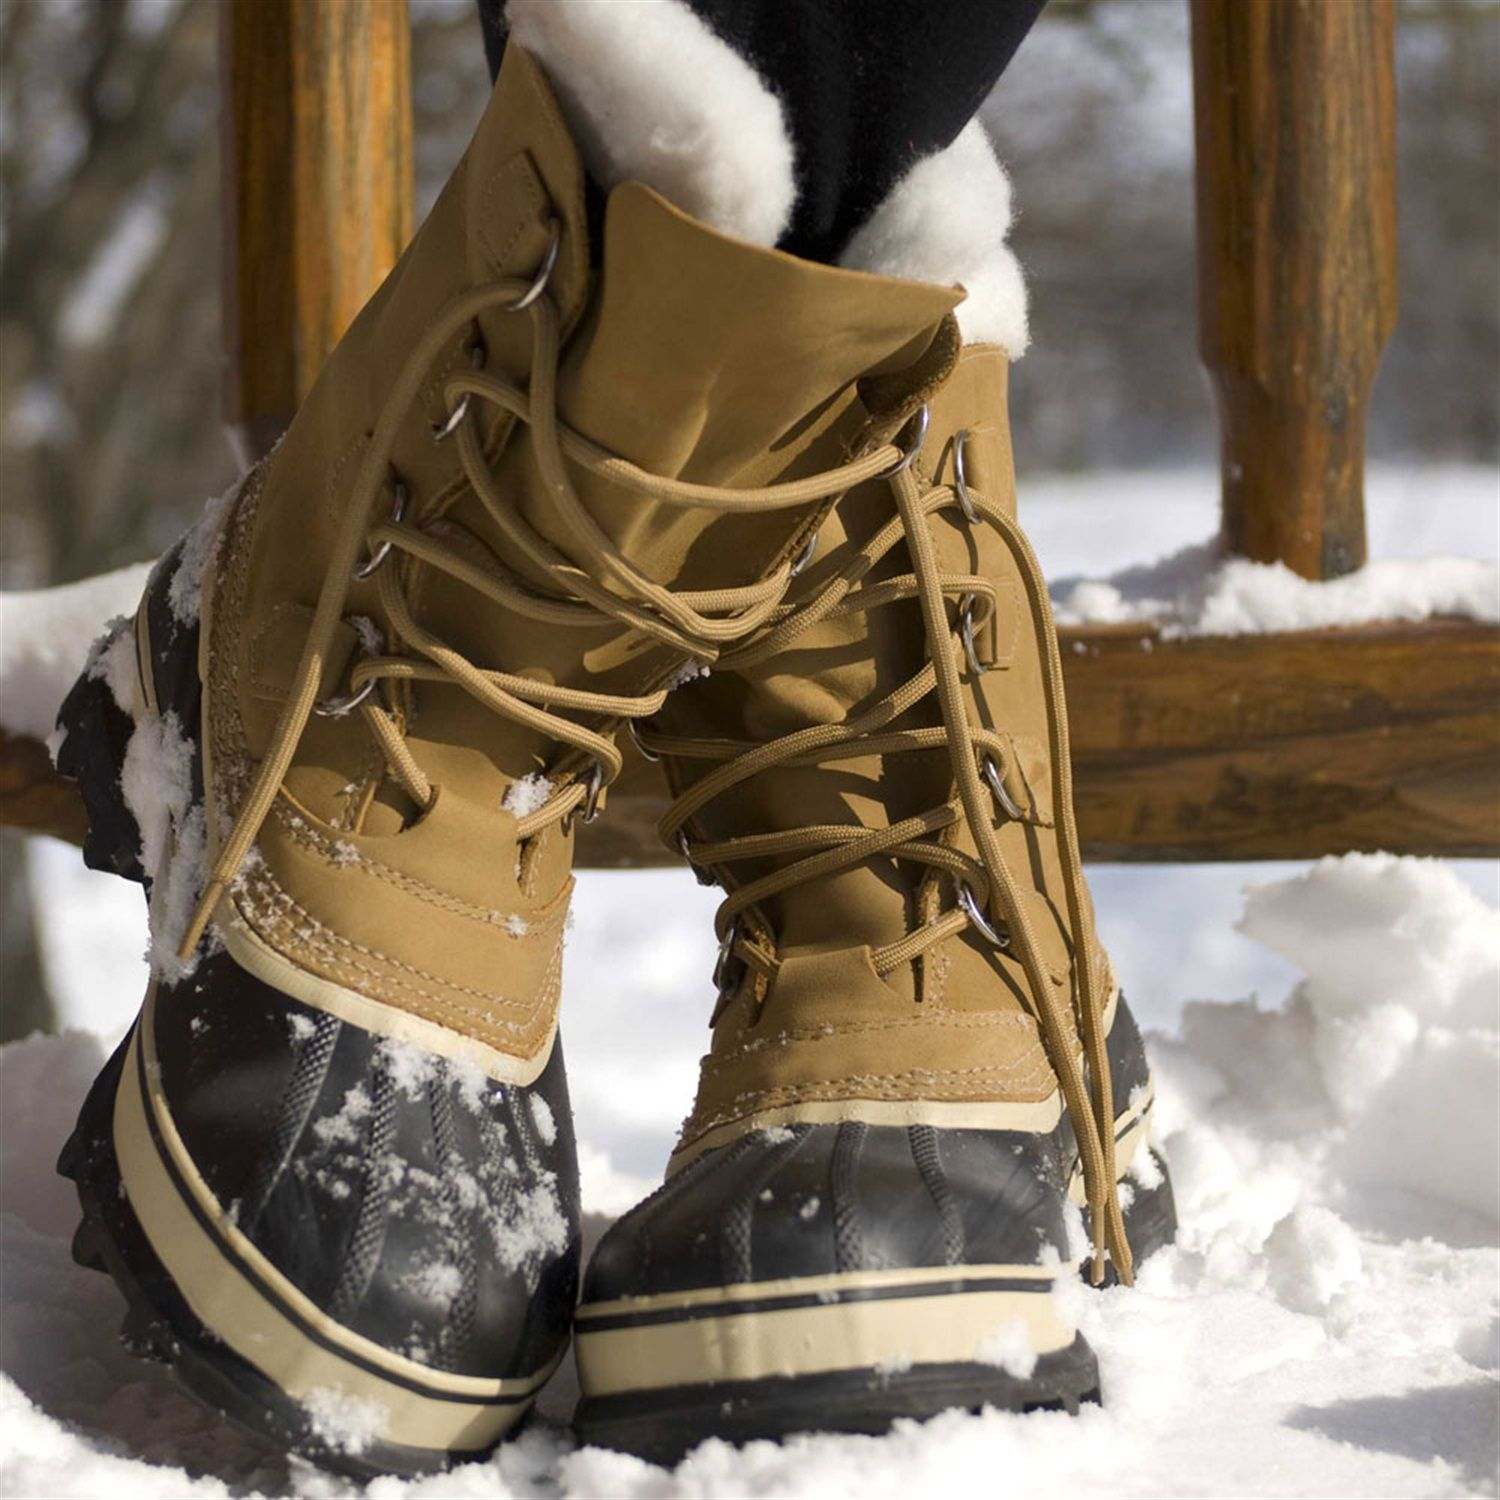 e4dcb7fc0dd Women's Sorel Caribou Boots - Duluth Trading | Fashion | Winter ...